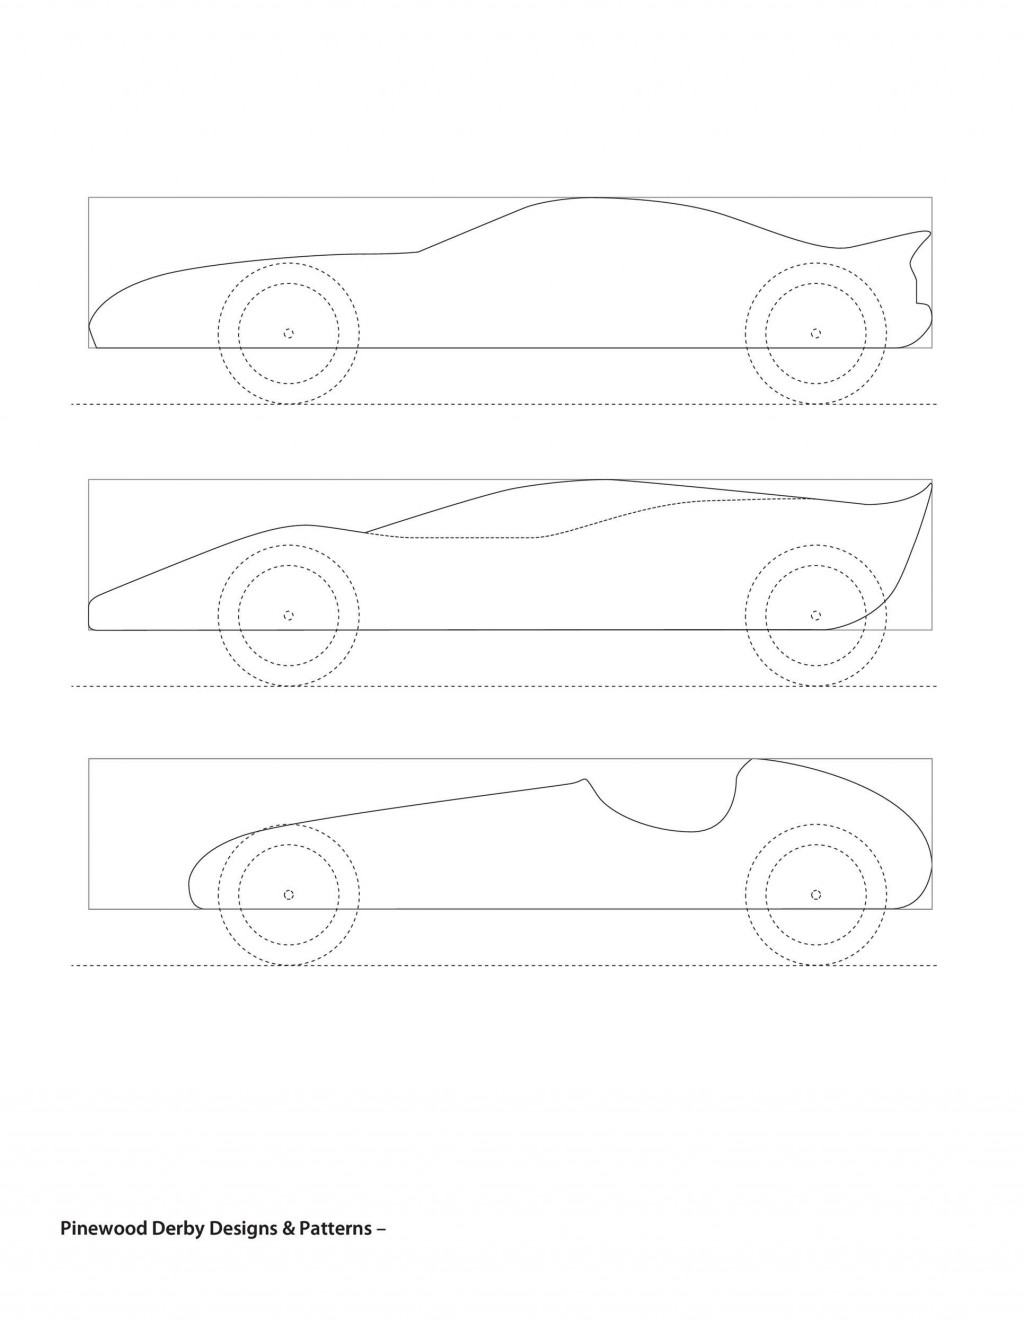 008 Dreaded Fast Pinewood Derby Car Template Image  Templates Design FastestLarge